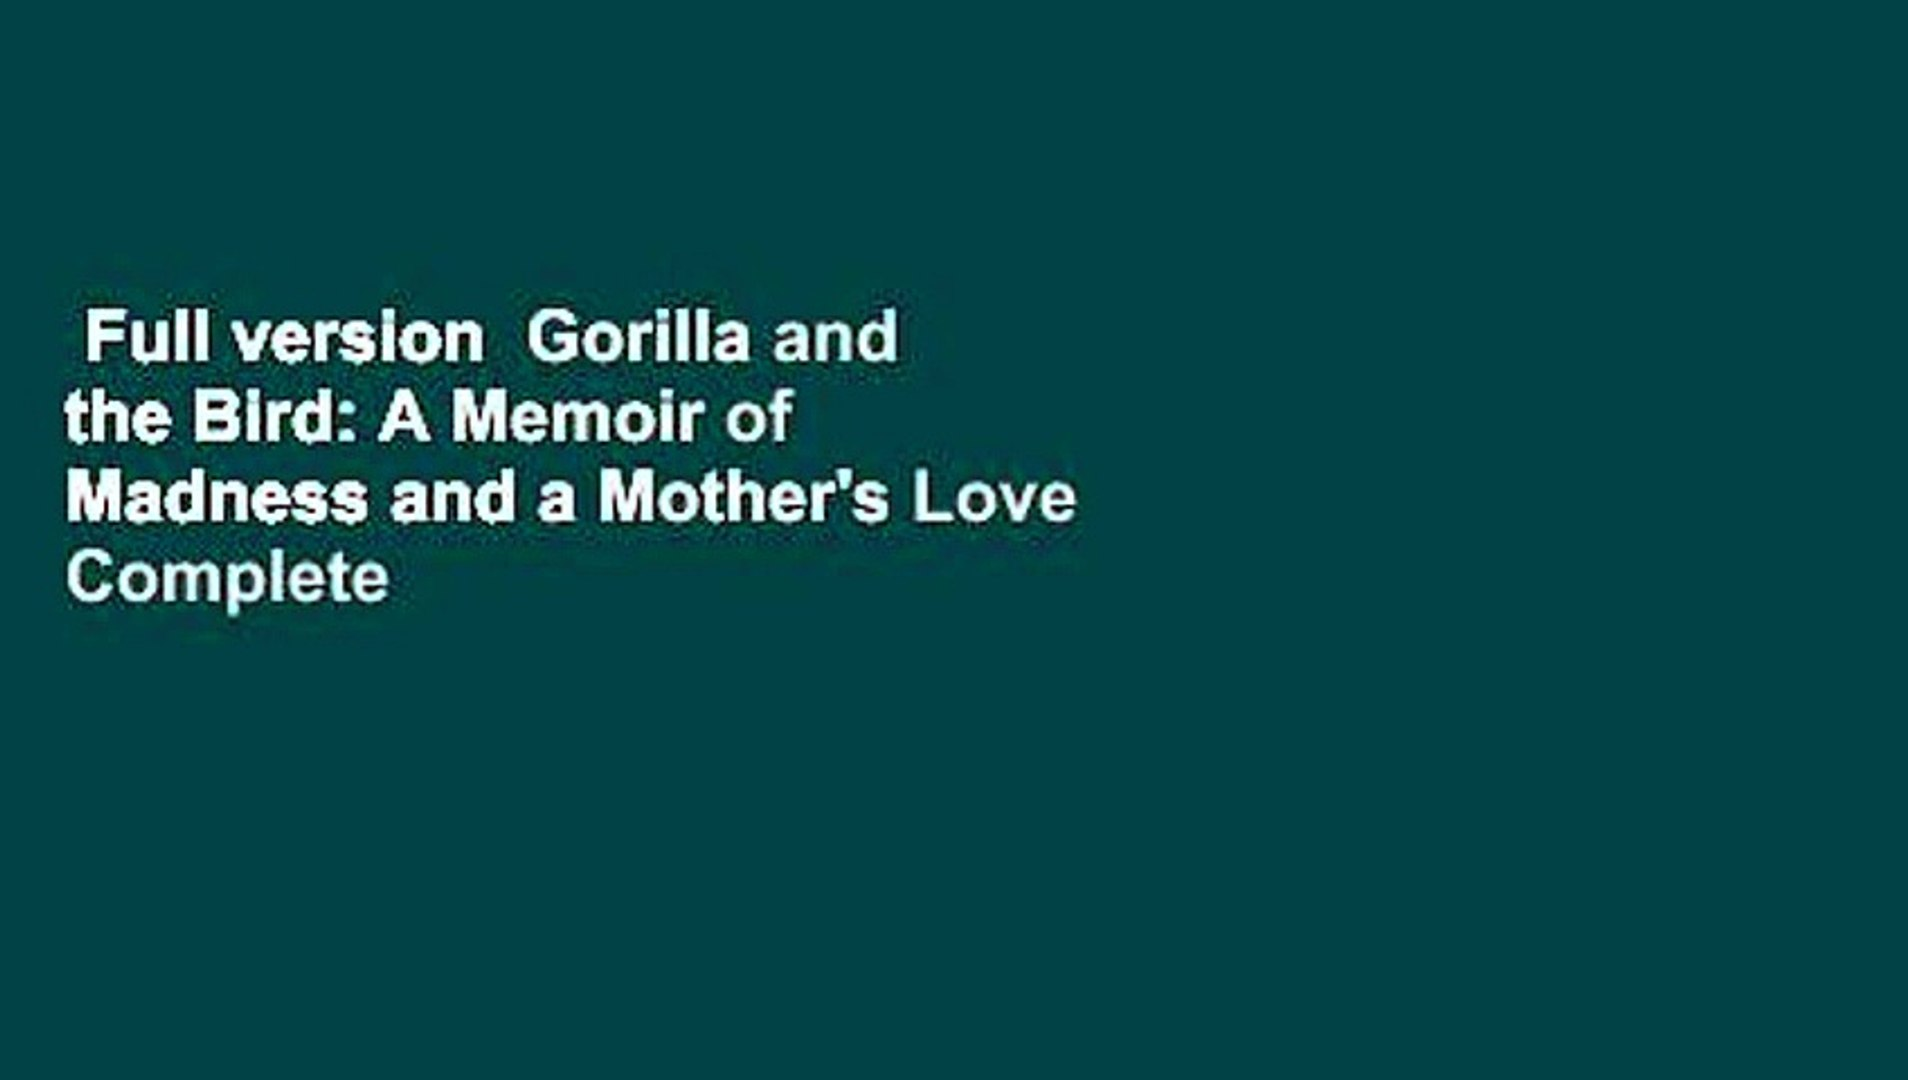 Full version  Gorilla and the Bird: A Memoir of Madness and a Mother's Love Complete